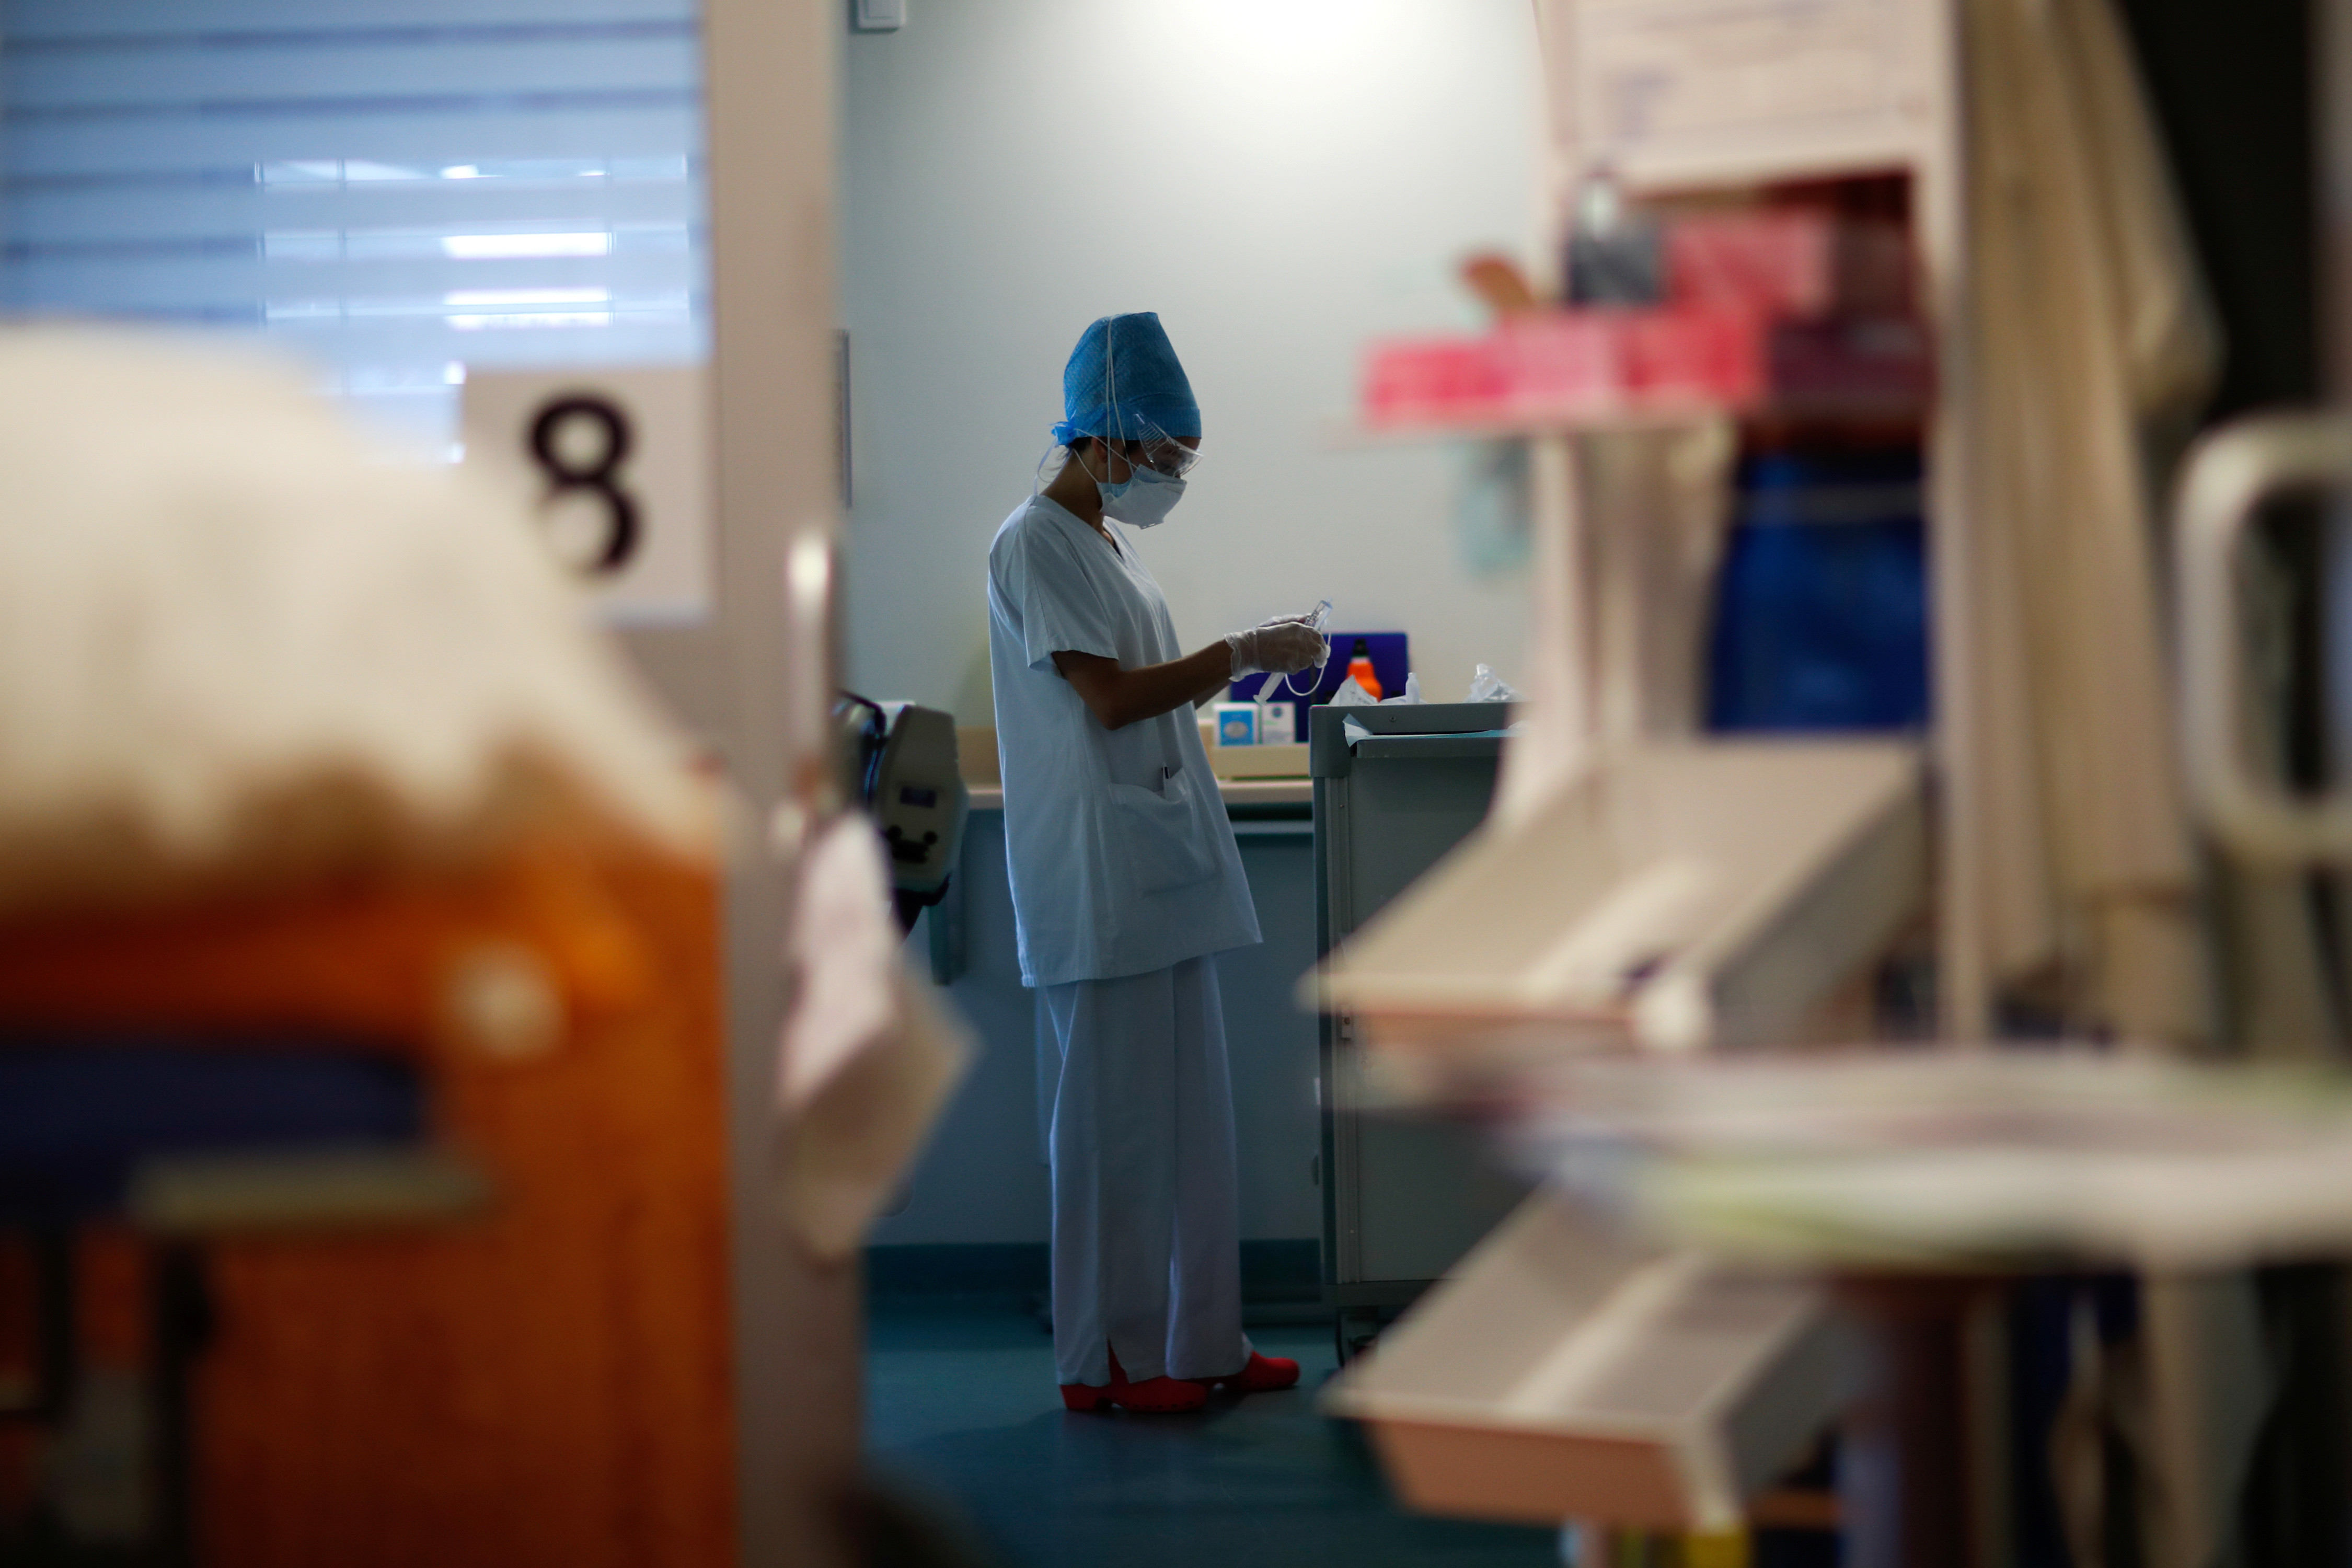 A medical staff member works in the Intensive Care Unit (ICU) for coronavirus disease (COVID-19) patients at the Robert Ballanger hospital in Aulnay-sous-Bois near Paris during the outbreak of the coronavirus disease in France, April 29, 2020. Seine-Saint-Denis, a mainly working class and multiracial suburb, was already lacking doctors and resources before the coronavirus crisis and has seen a bigger spike in mortality than neighbouring Paris. But despite being understaffed, teams at Robert Ballanger hospital reorganized to prioritize emergency health and have worked long hours, giving everything to fight the virus. Picture taken April 30, 2020. REUTERS/Gonzalo Fuentes - RC25JG94KZCV